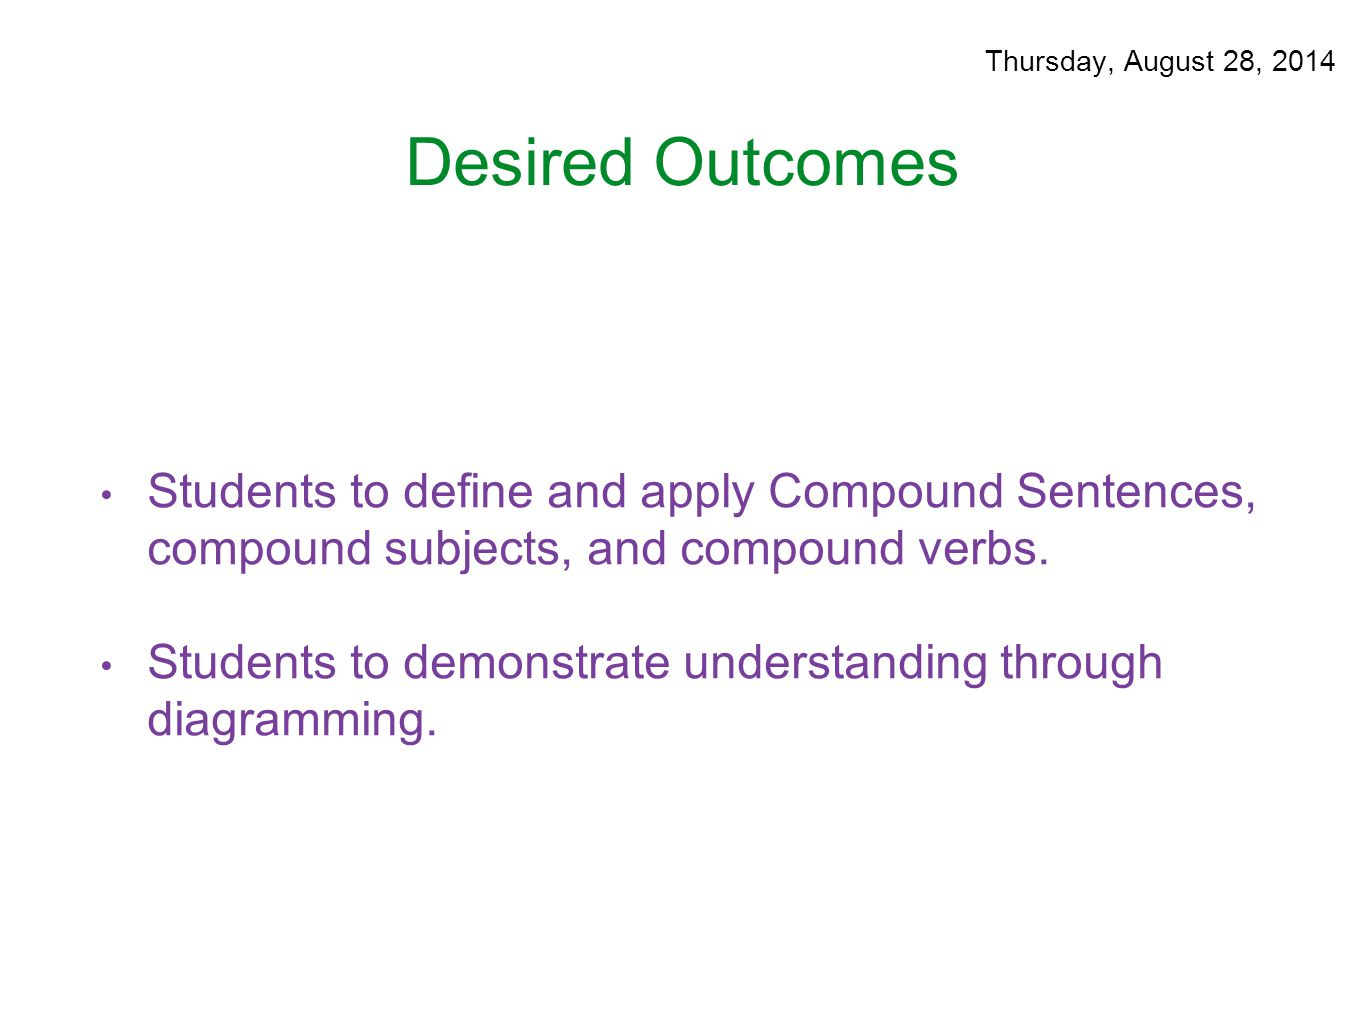 Parts of speech august 25 29 ppt download thursday august 28 2014 desired outcomes students to define and apply compound sentences pooptronica